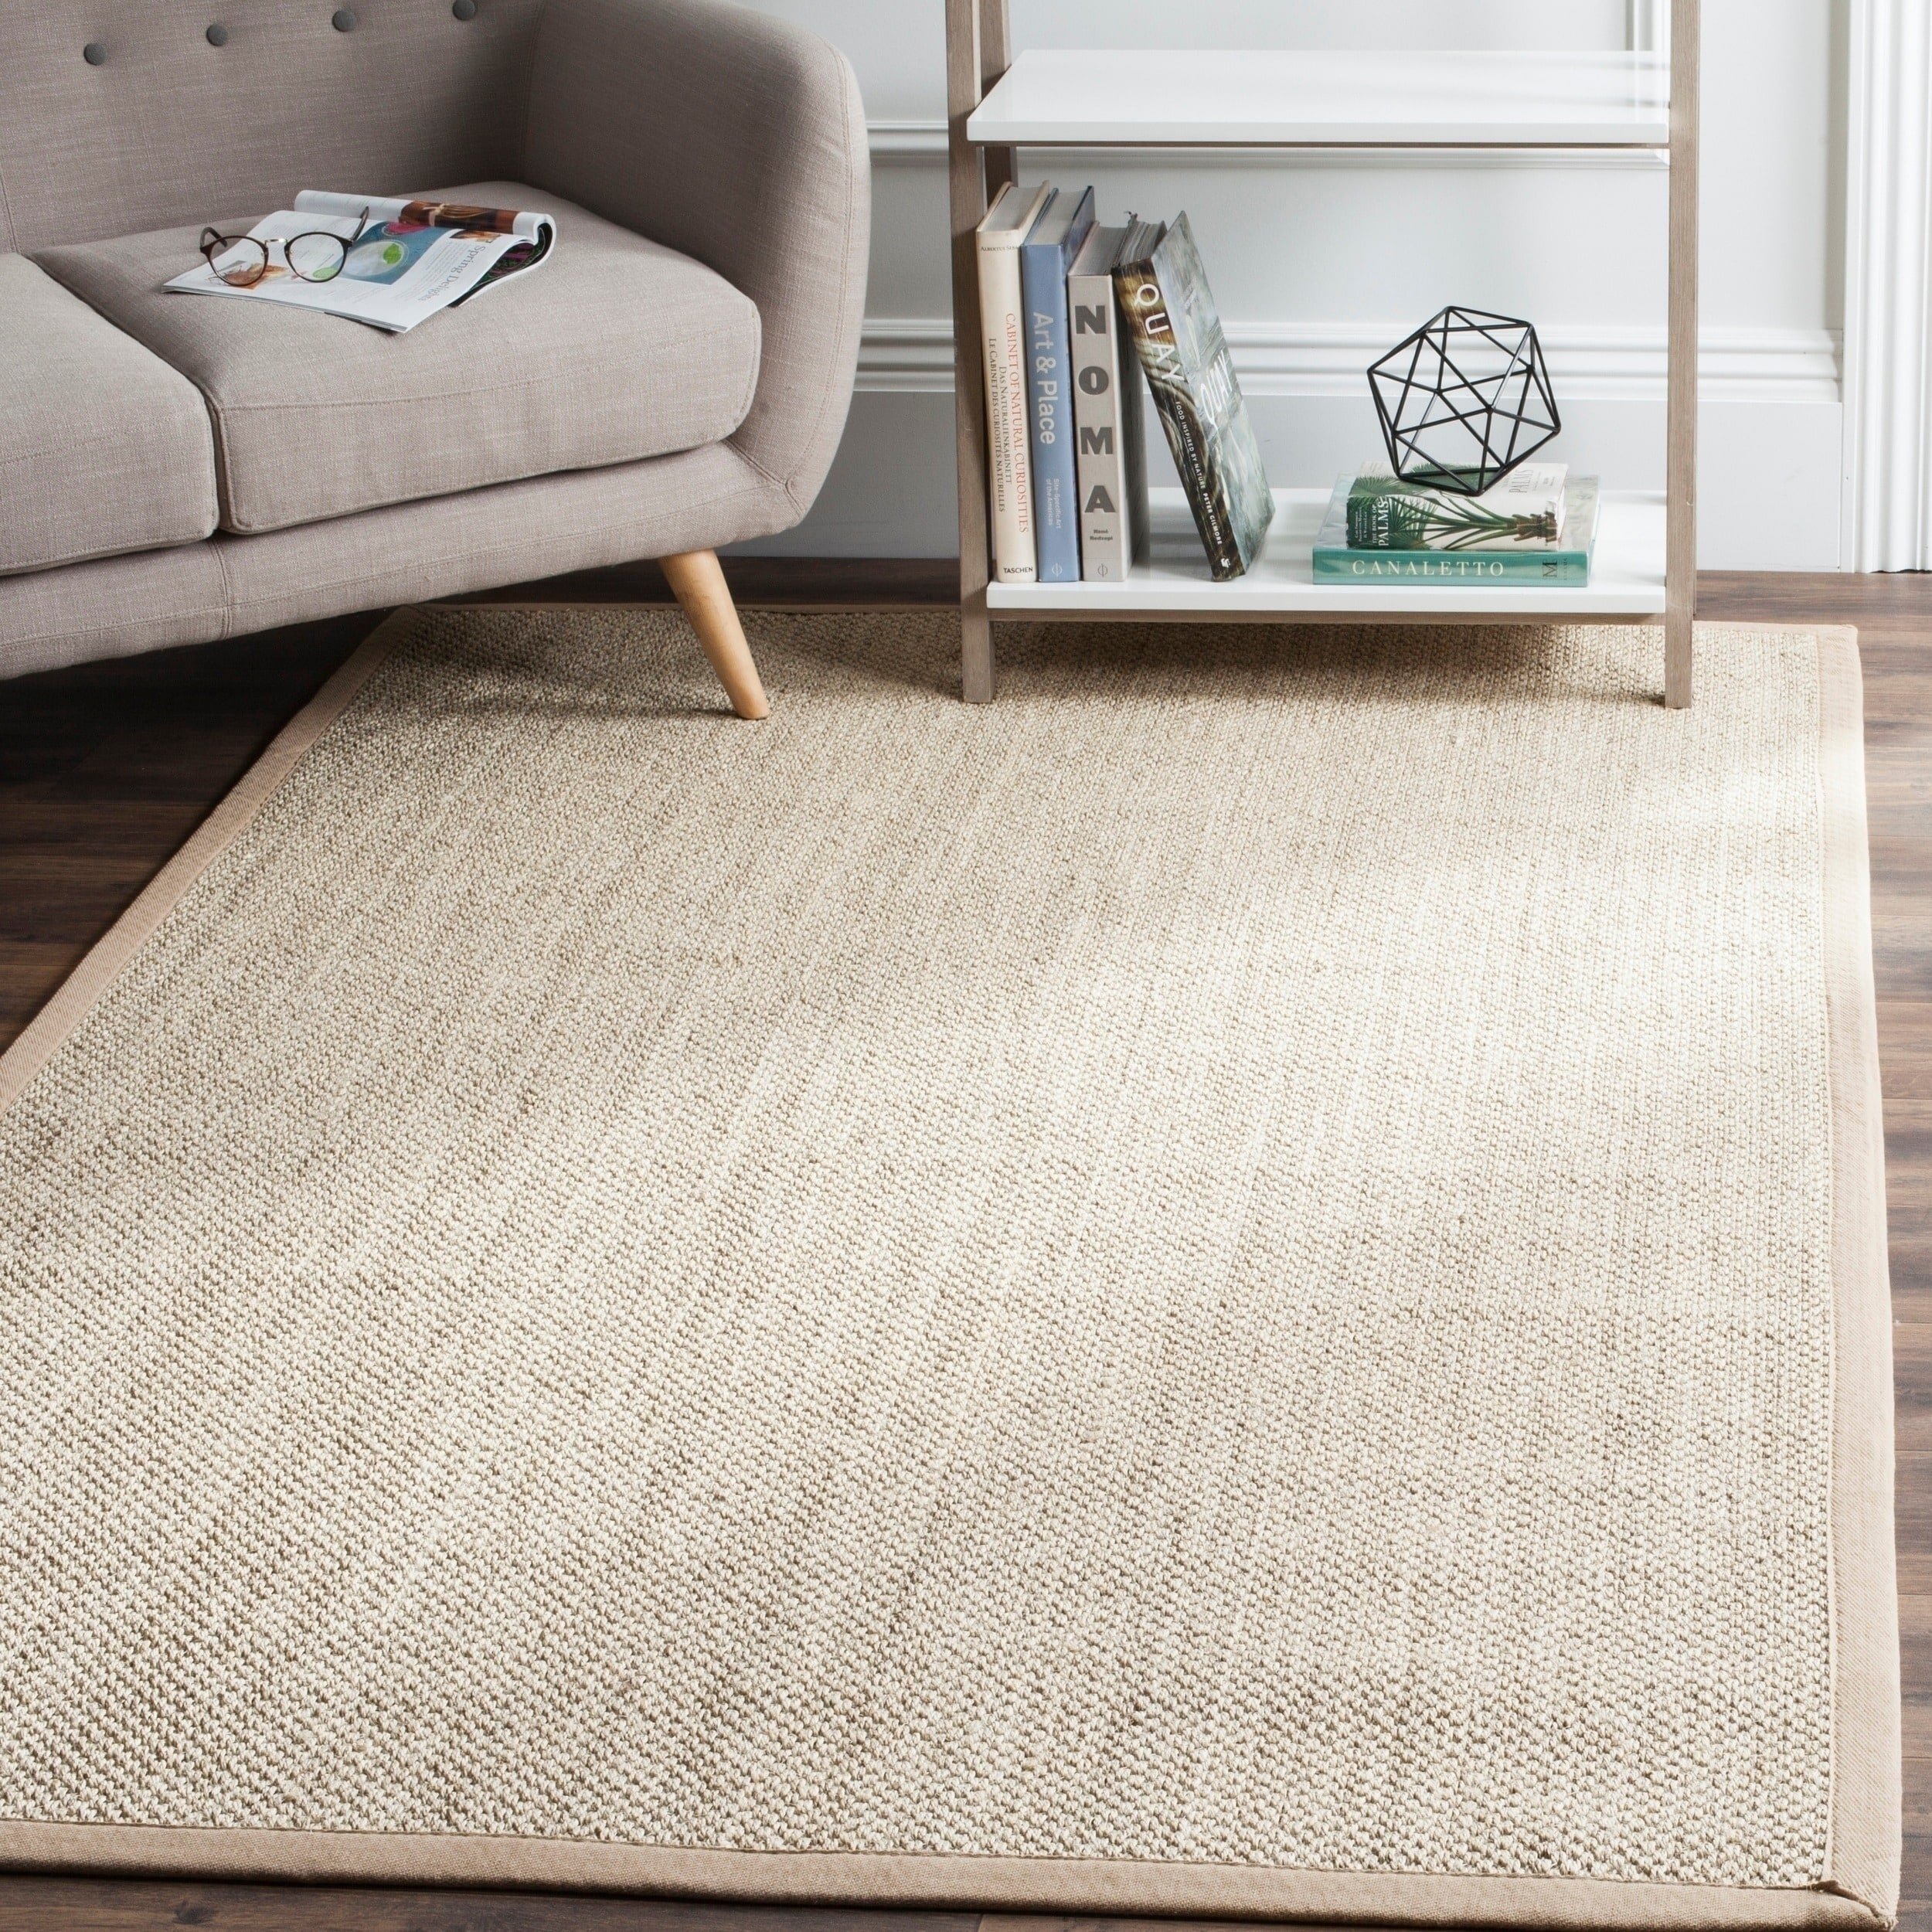 Shop safavieh casual natural fiber marble ivory linen sisal area rug 9 x 12 on sale free shipping today overstock com 11041139